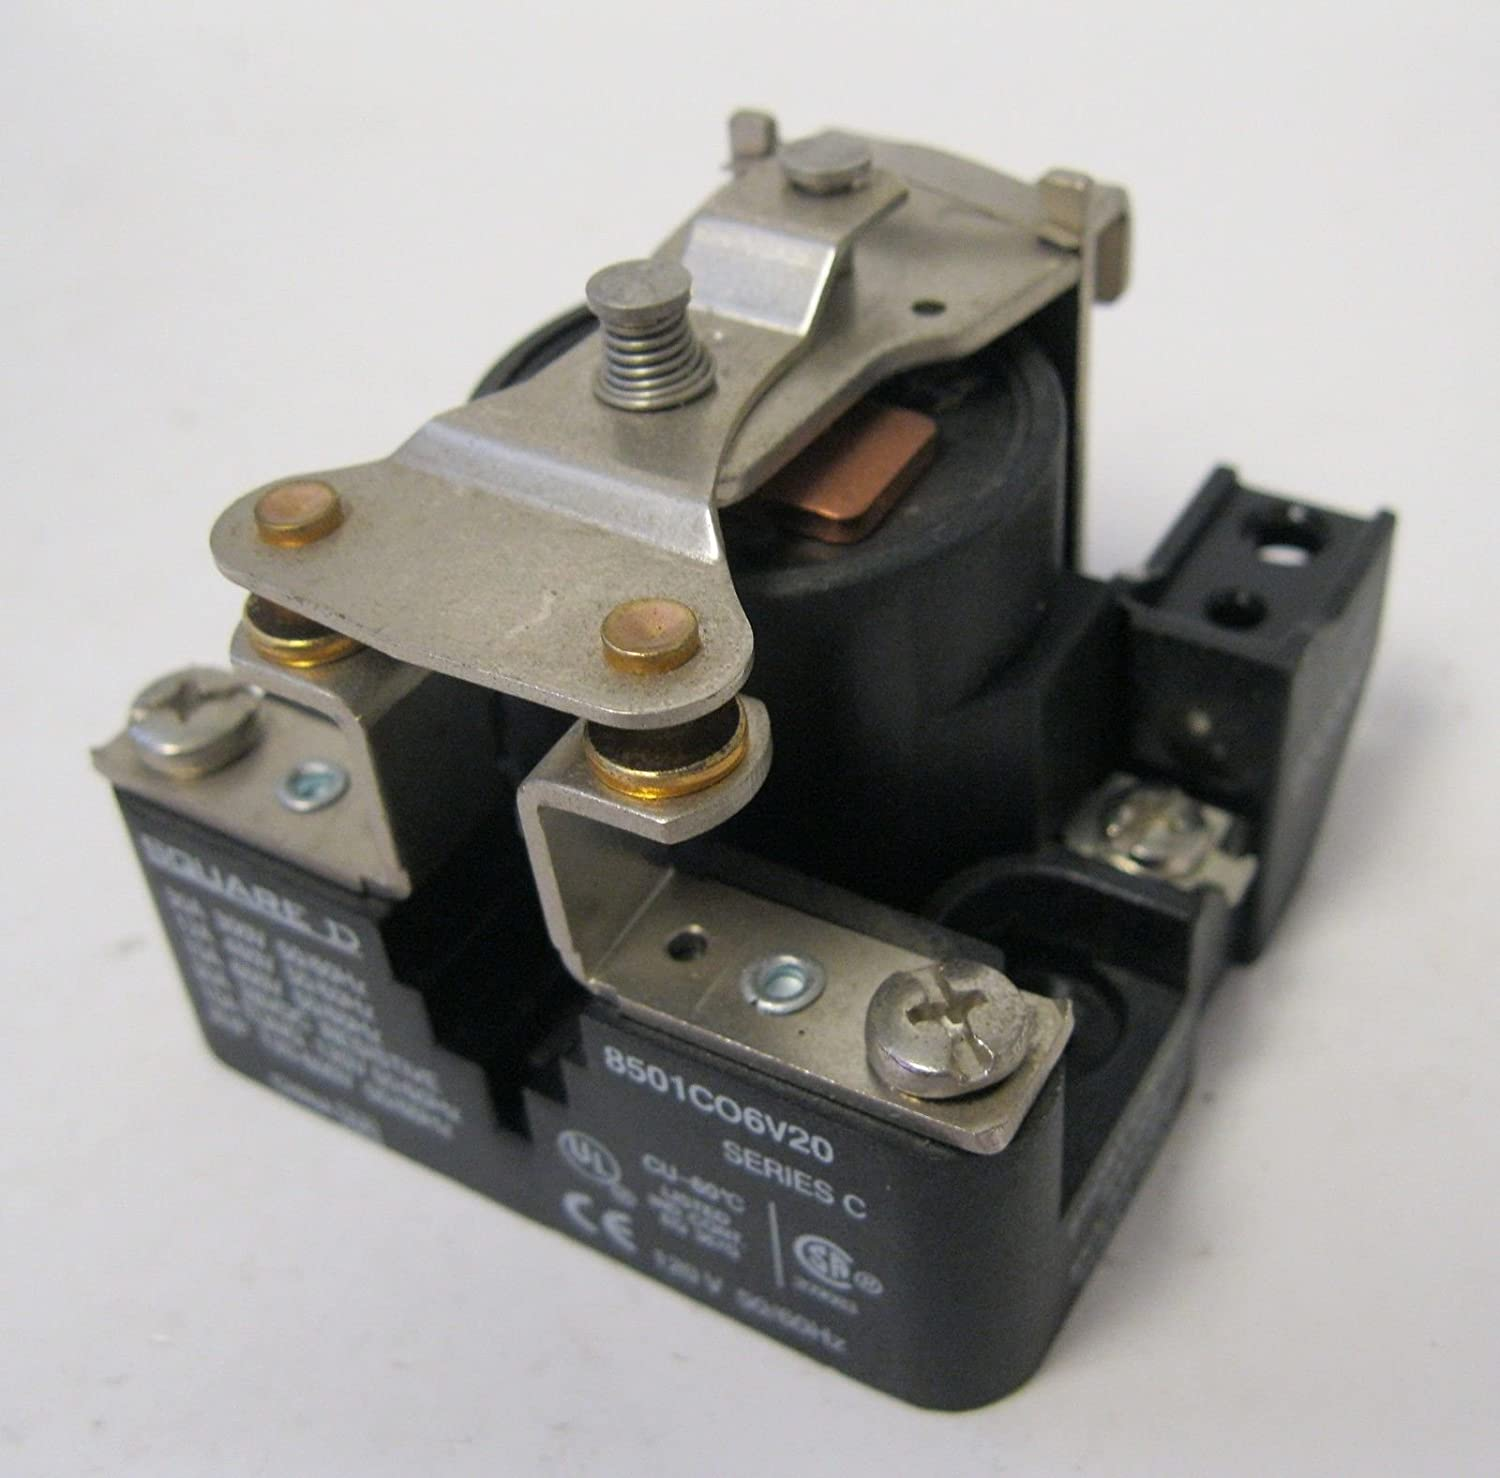 Square D Industrial SPST Power Control Relay 8501-CO6V20 2HP 120VAC Coil